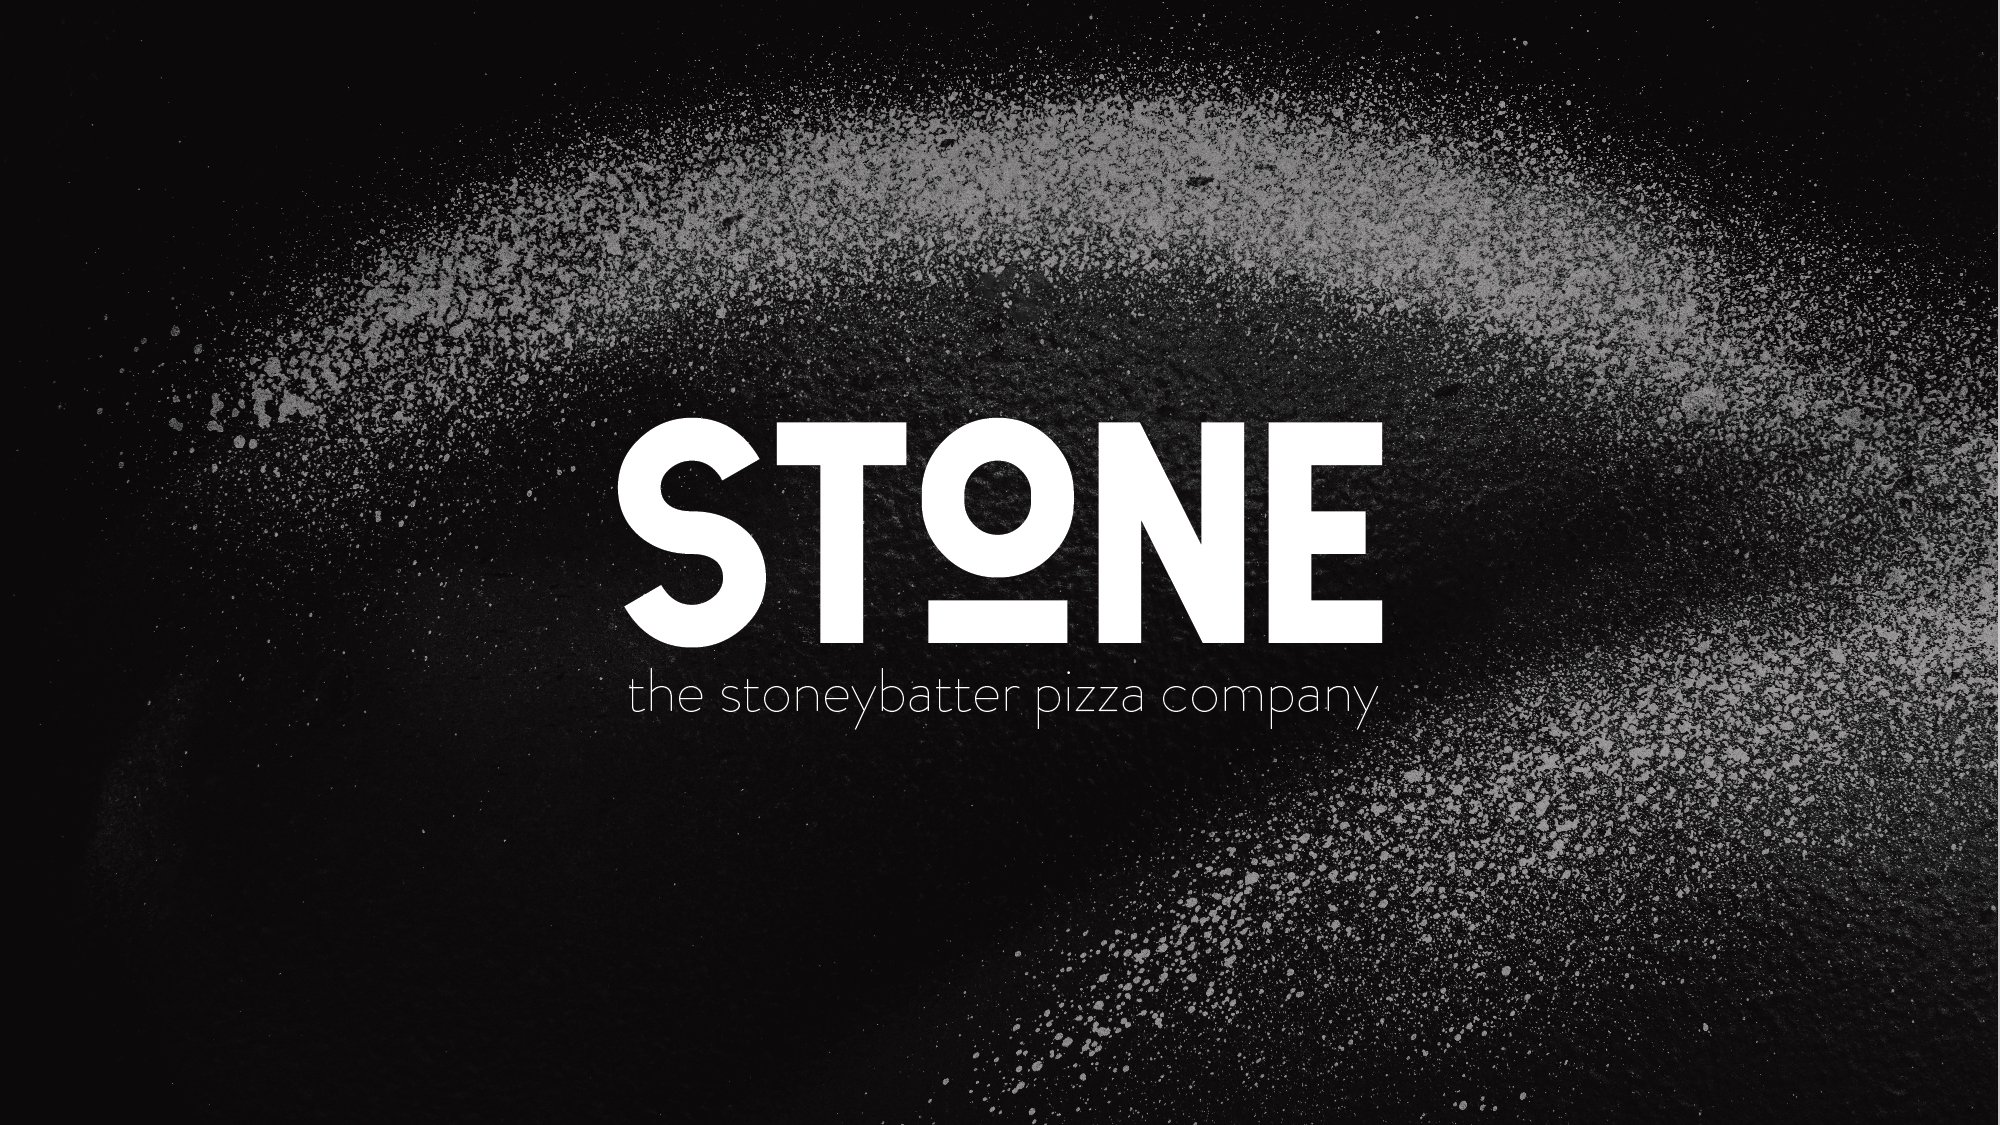 Cover image: Stone